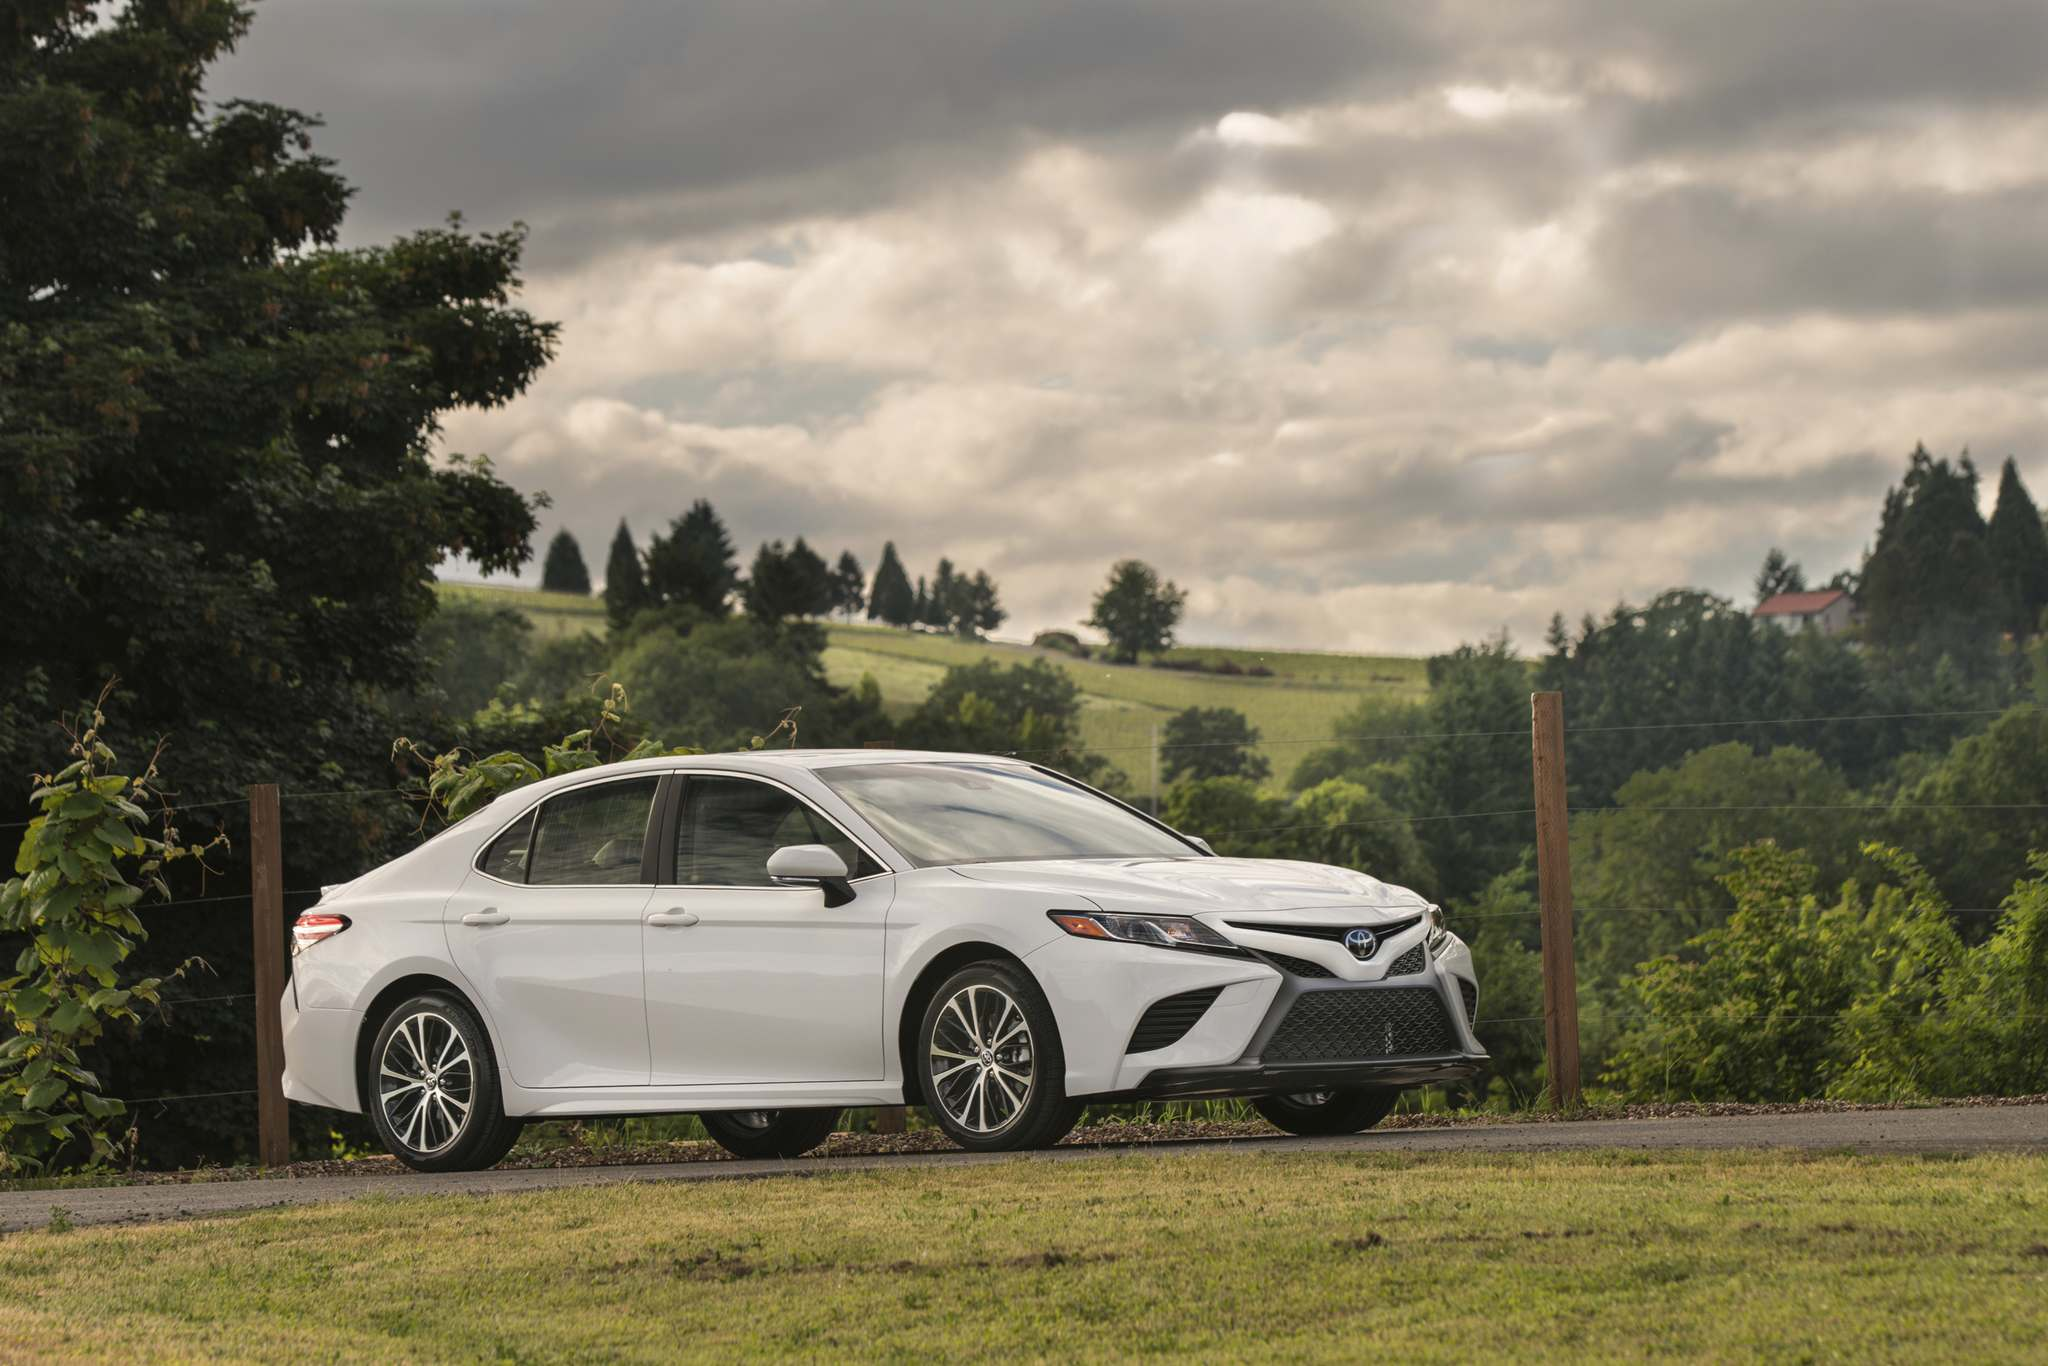 TOYOTAThe Toyota Camry was the second-place pick among mid-size sedans. It drew attention for a comfortable ride, its interior space and fuel-efficient engine.